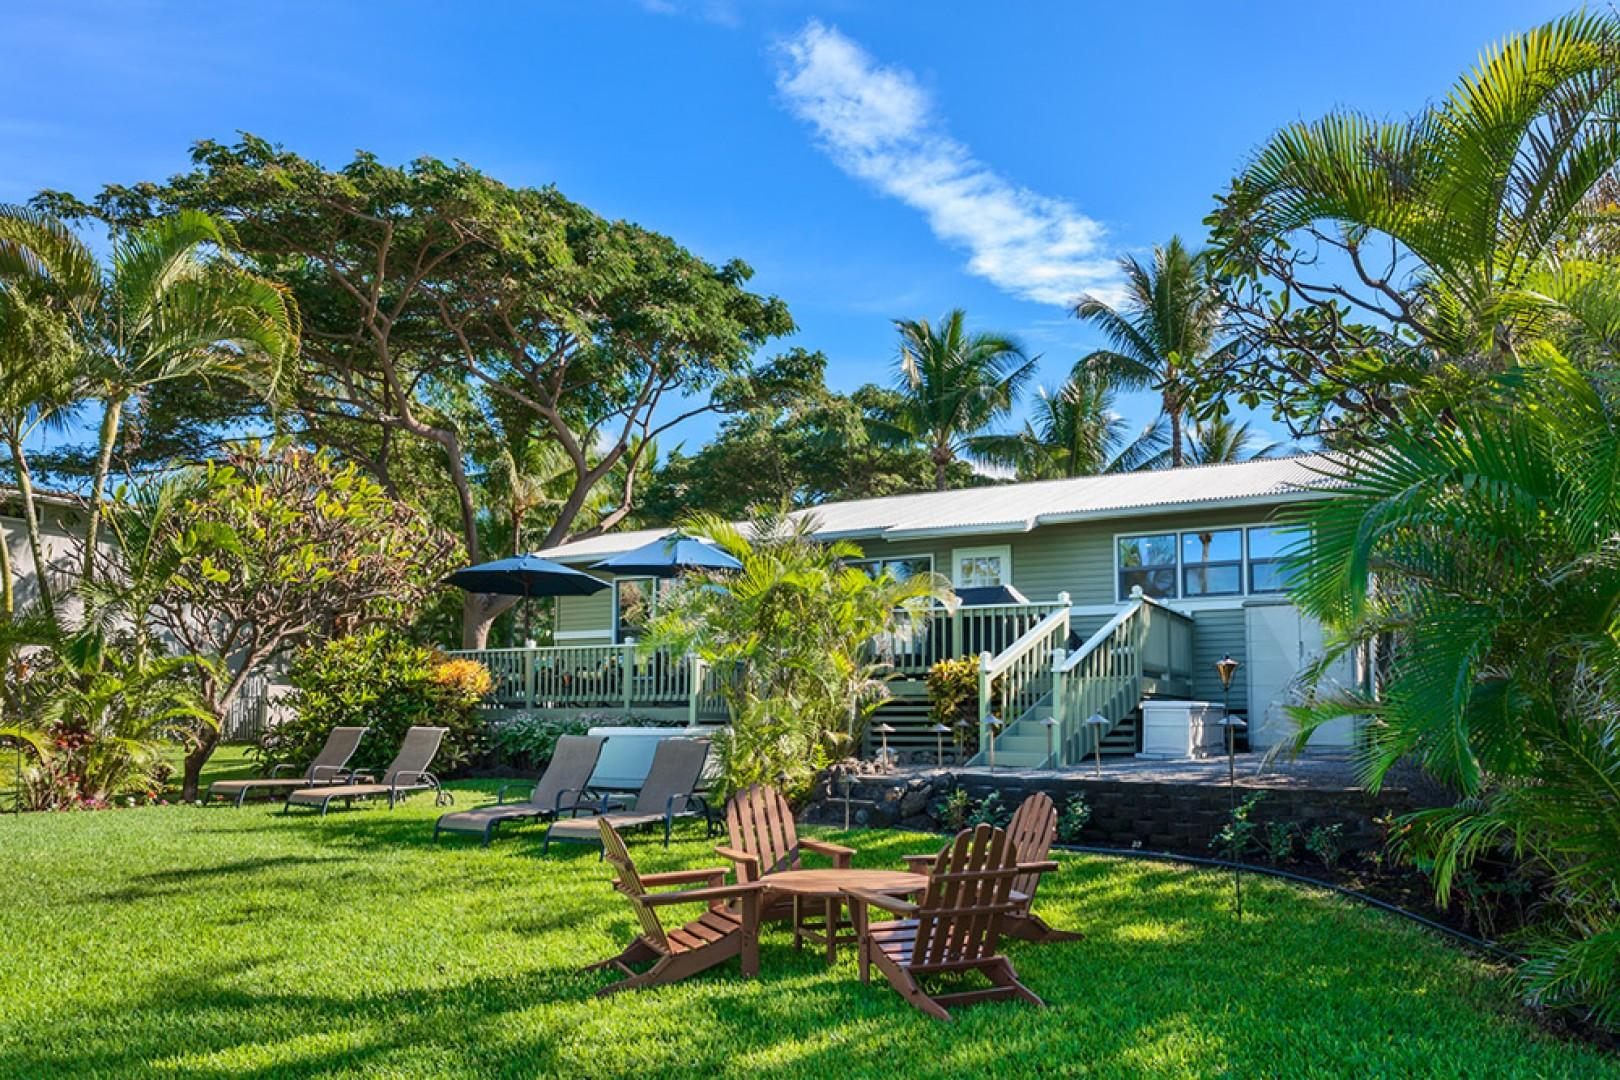 Wailea Sunset Bungalow - Ocean Front Patio with BBQ, Outdoor Dining & Lounging and Hot Tub. We also supply beach toys, tiki torches, and firewood for the beachfront campfire pit!